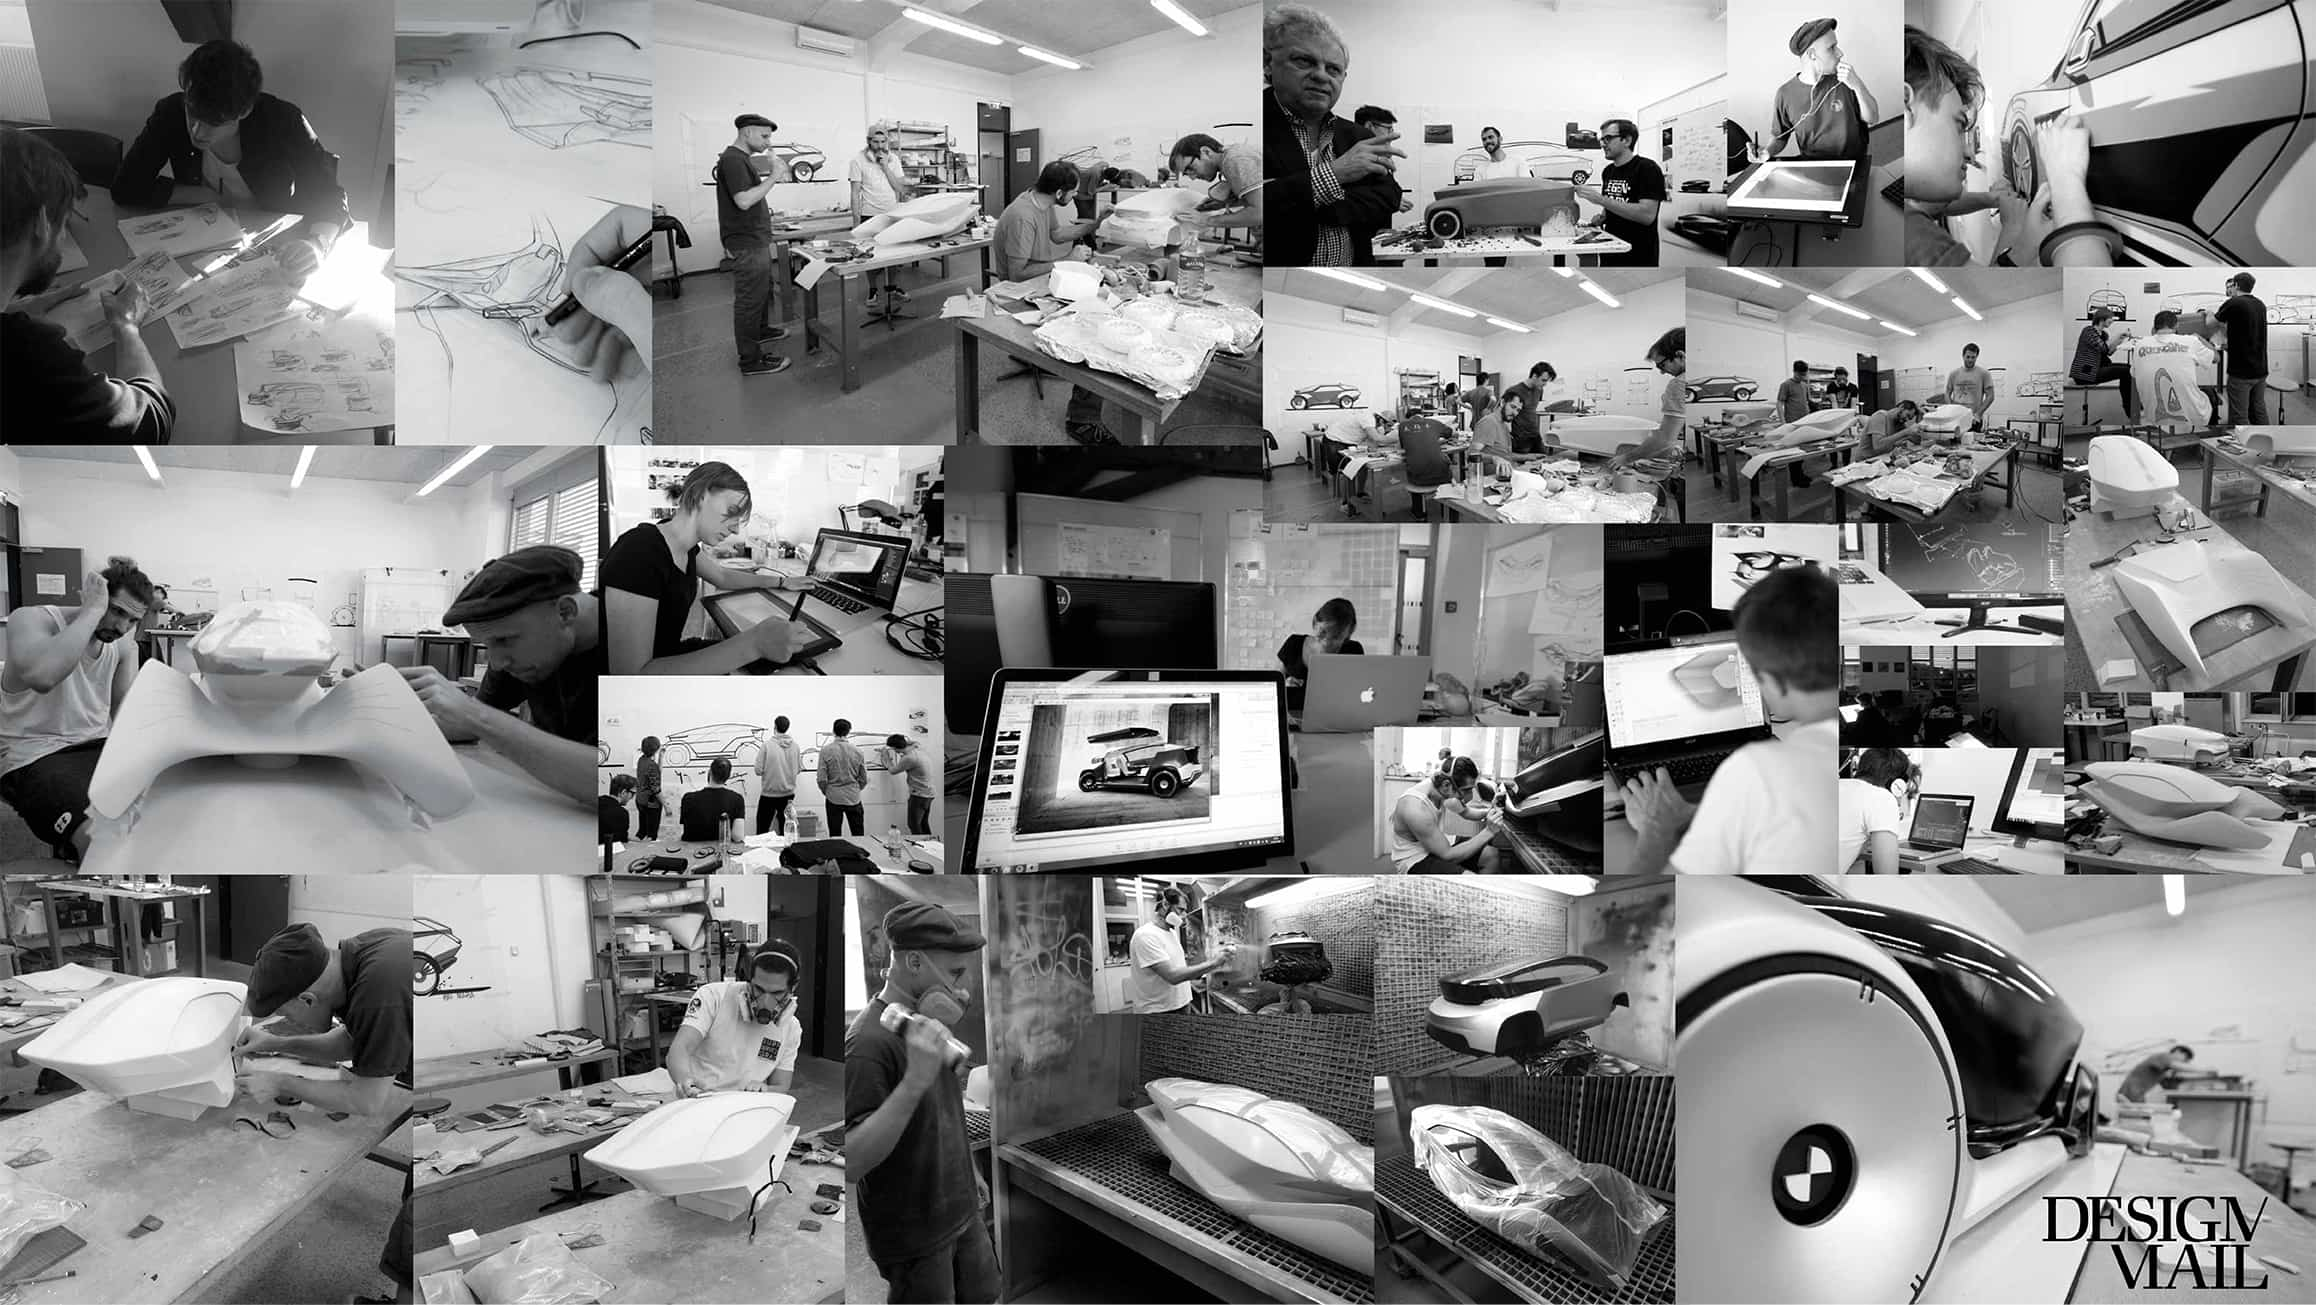 In cooperation with BMW Group Design Munich some students designed this one for their master's degree programme.